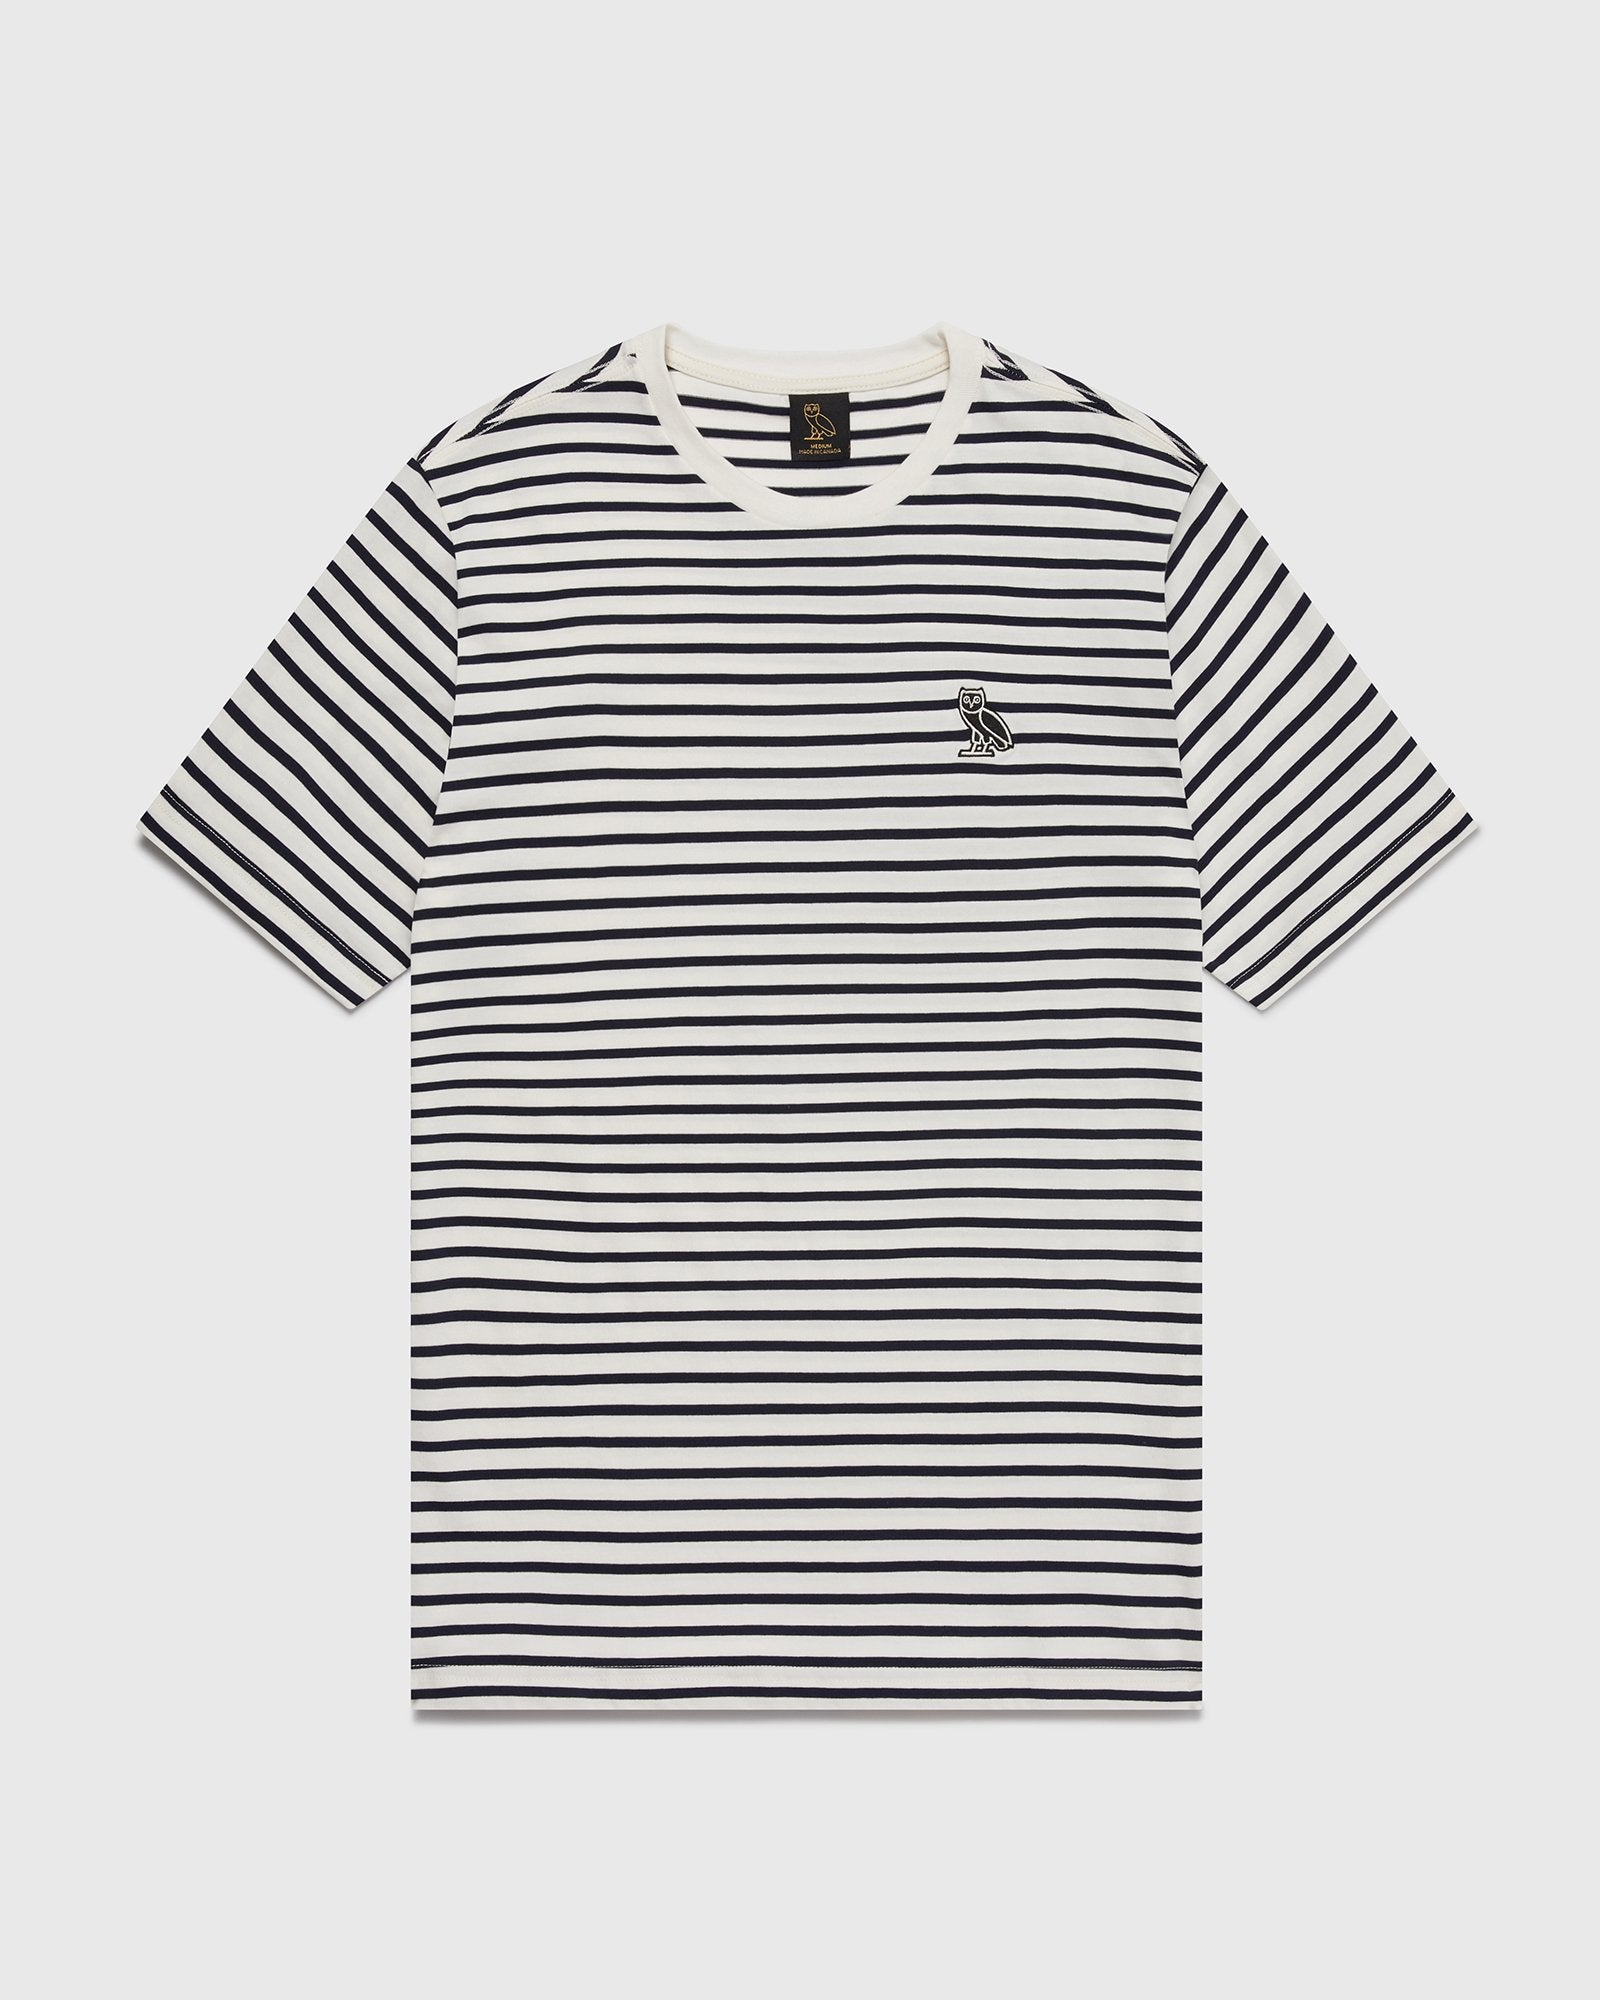 NAUTICAL STRIPE T-SHIRT - NAVY/CREAM IMAGE #1